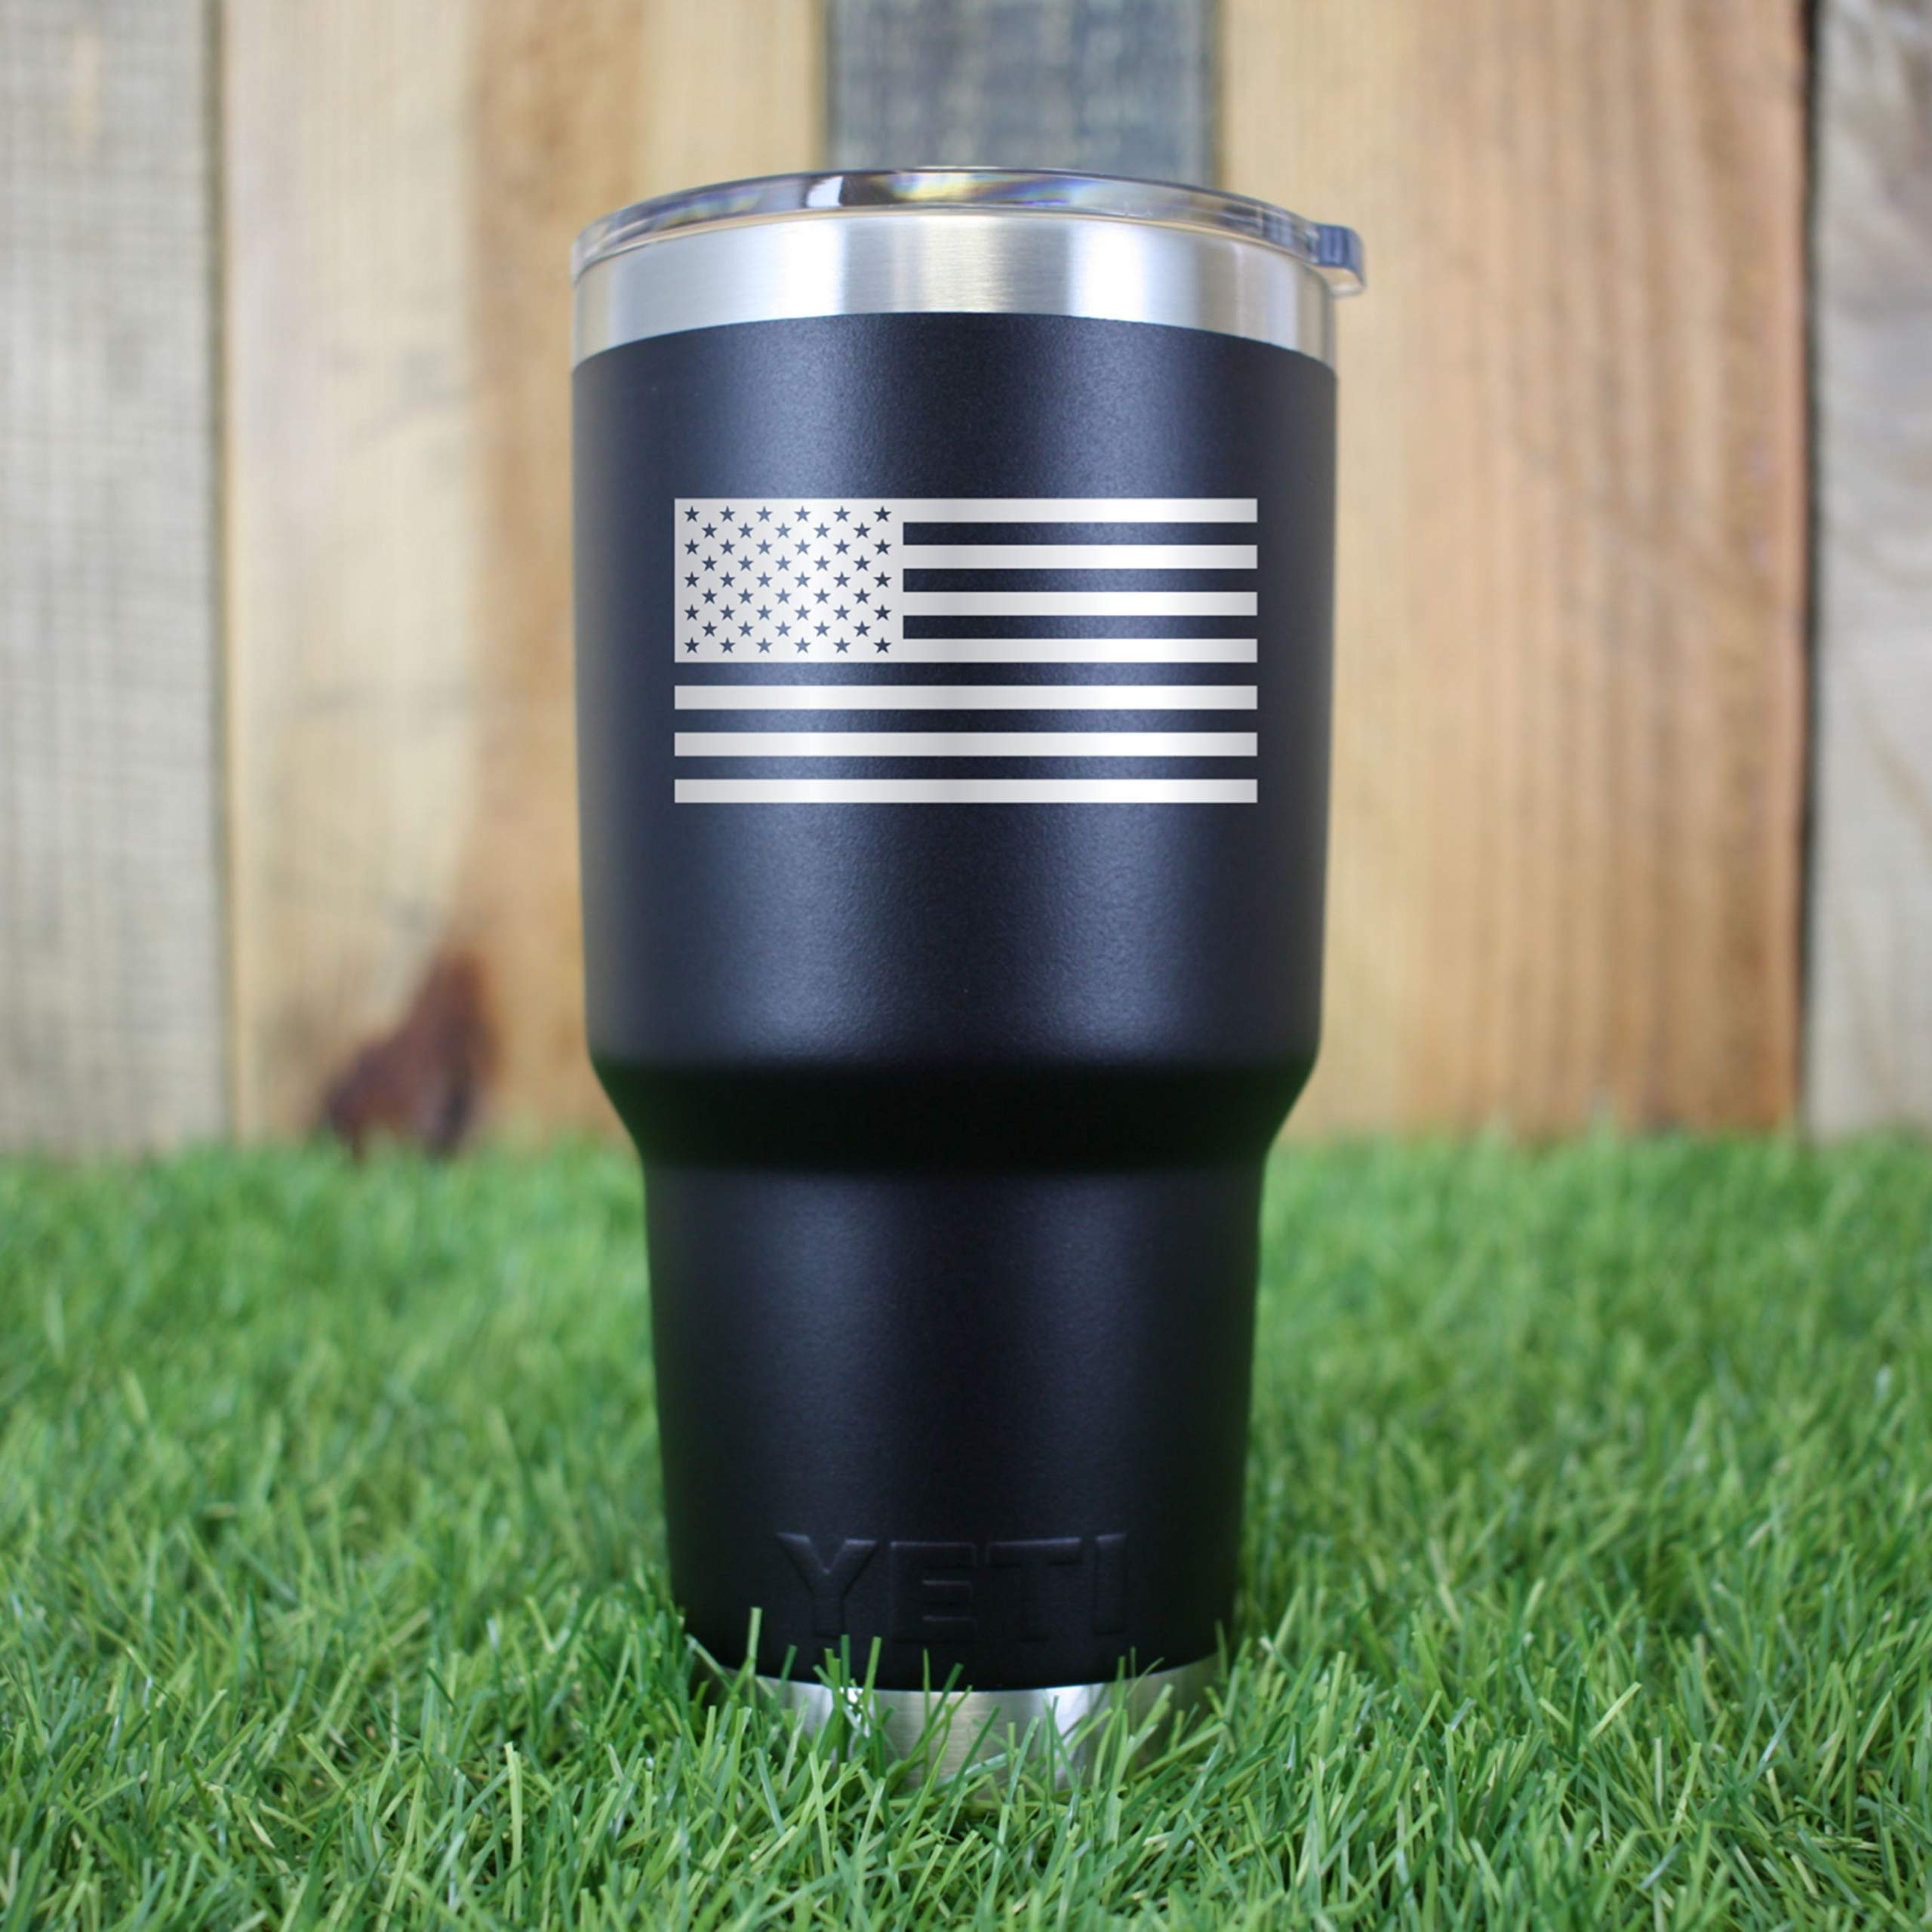 Engraved YETI Tumbler | American Flag | Patriotic Gift | Gift for Army Marines Navy AirForce | Guaranteed Authentic